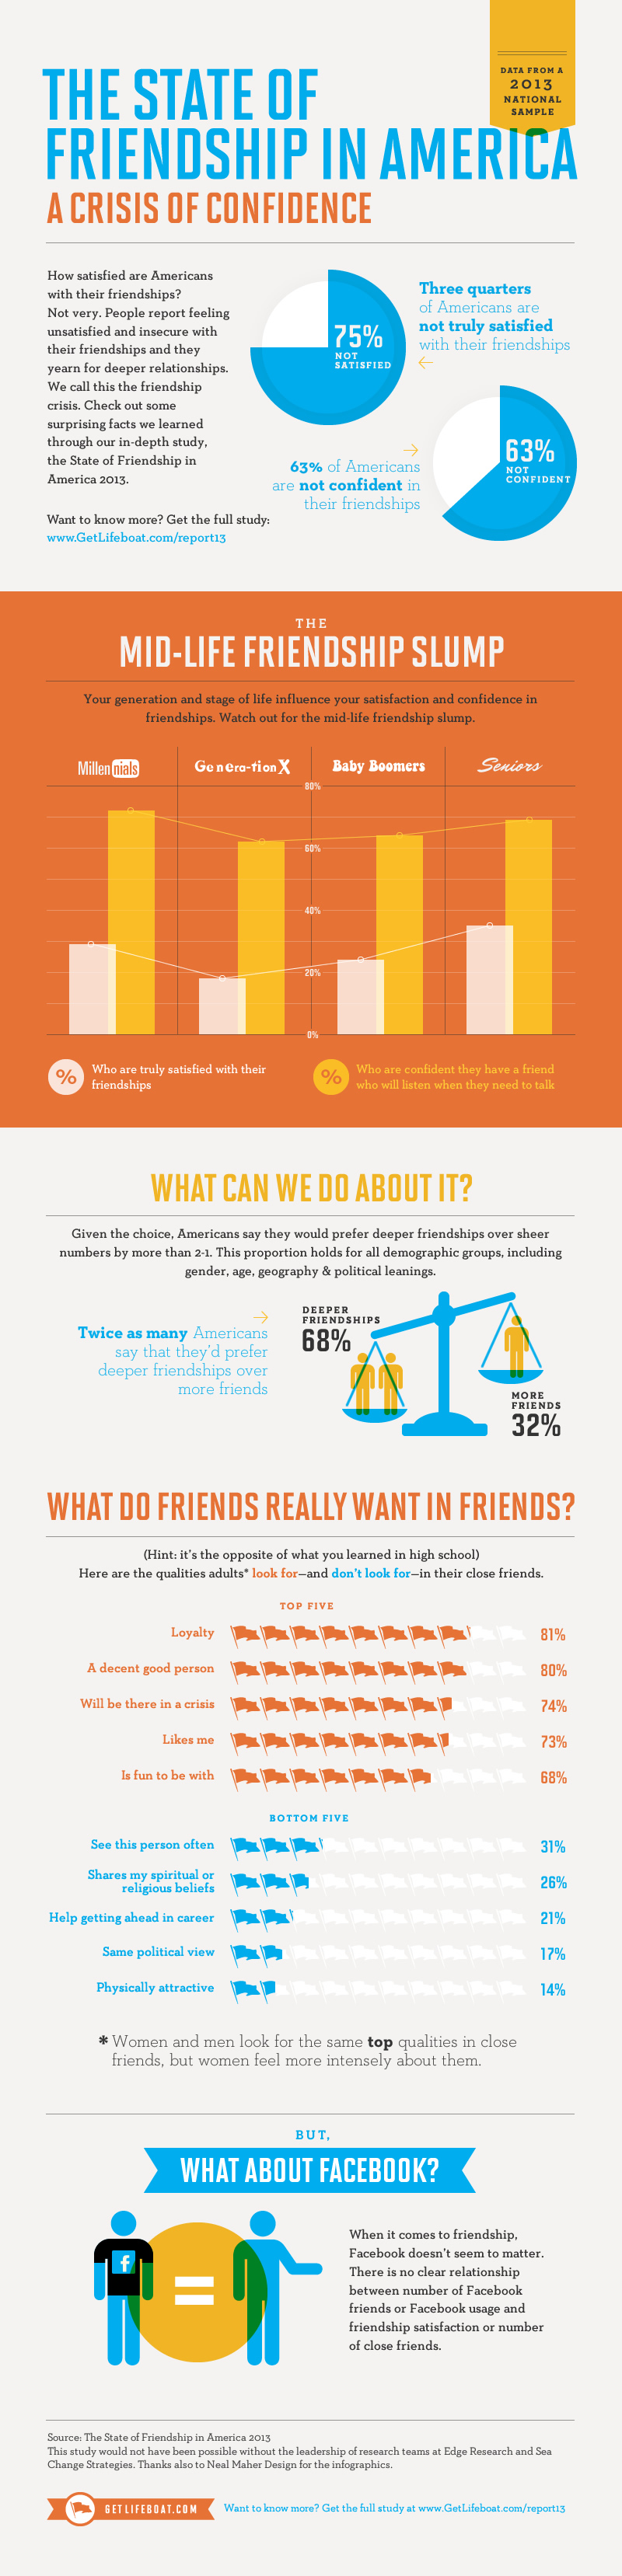 Friendship Trends While Aging